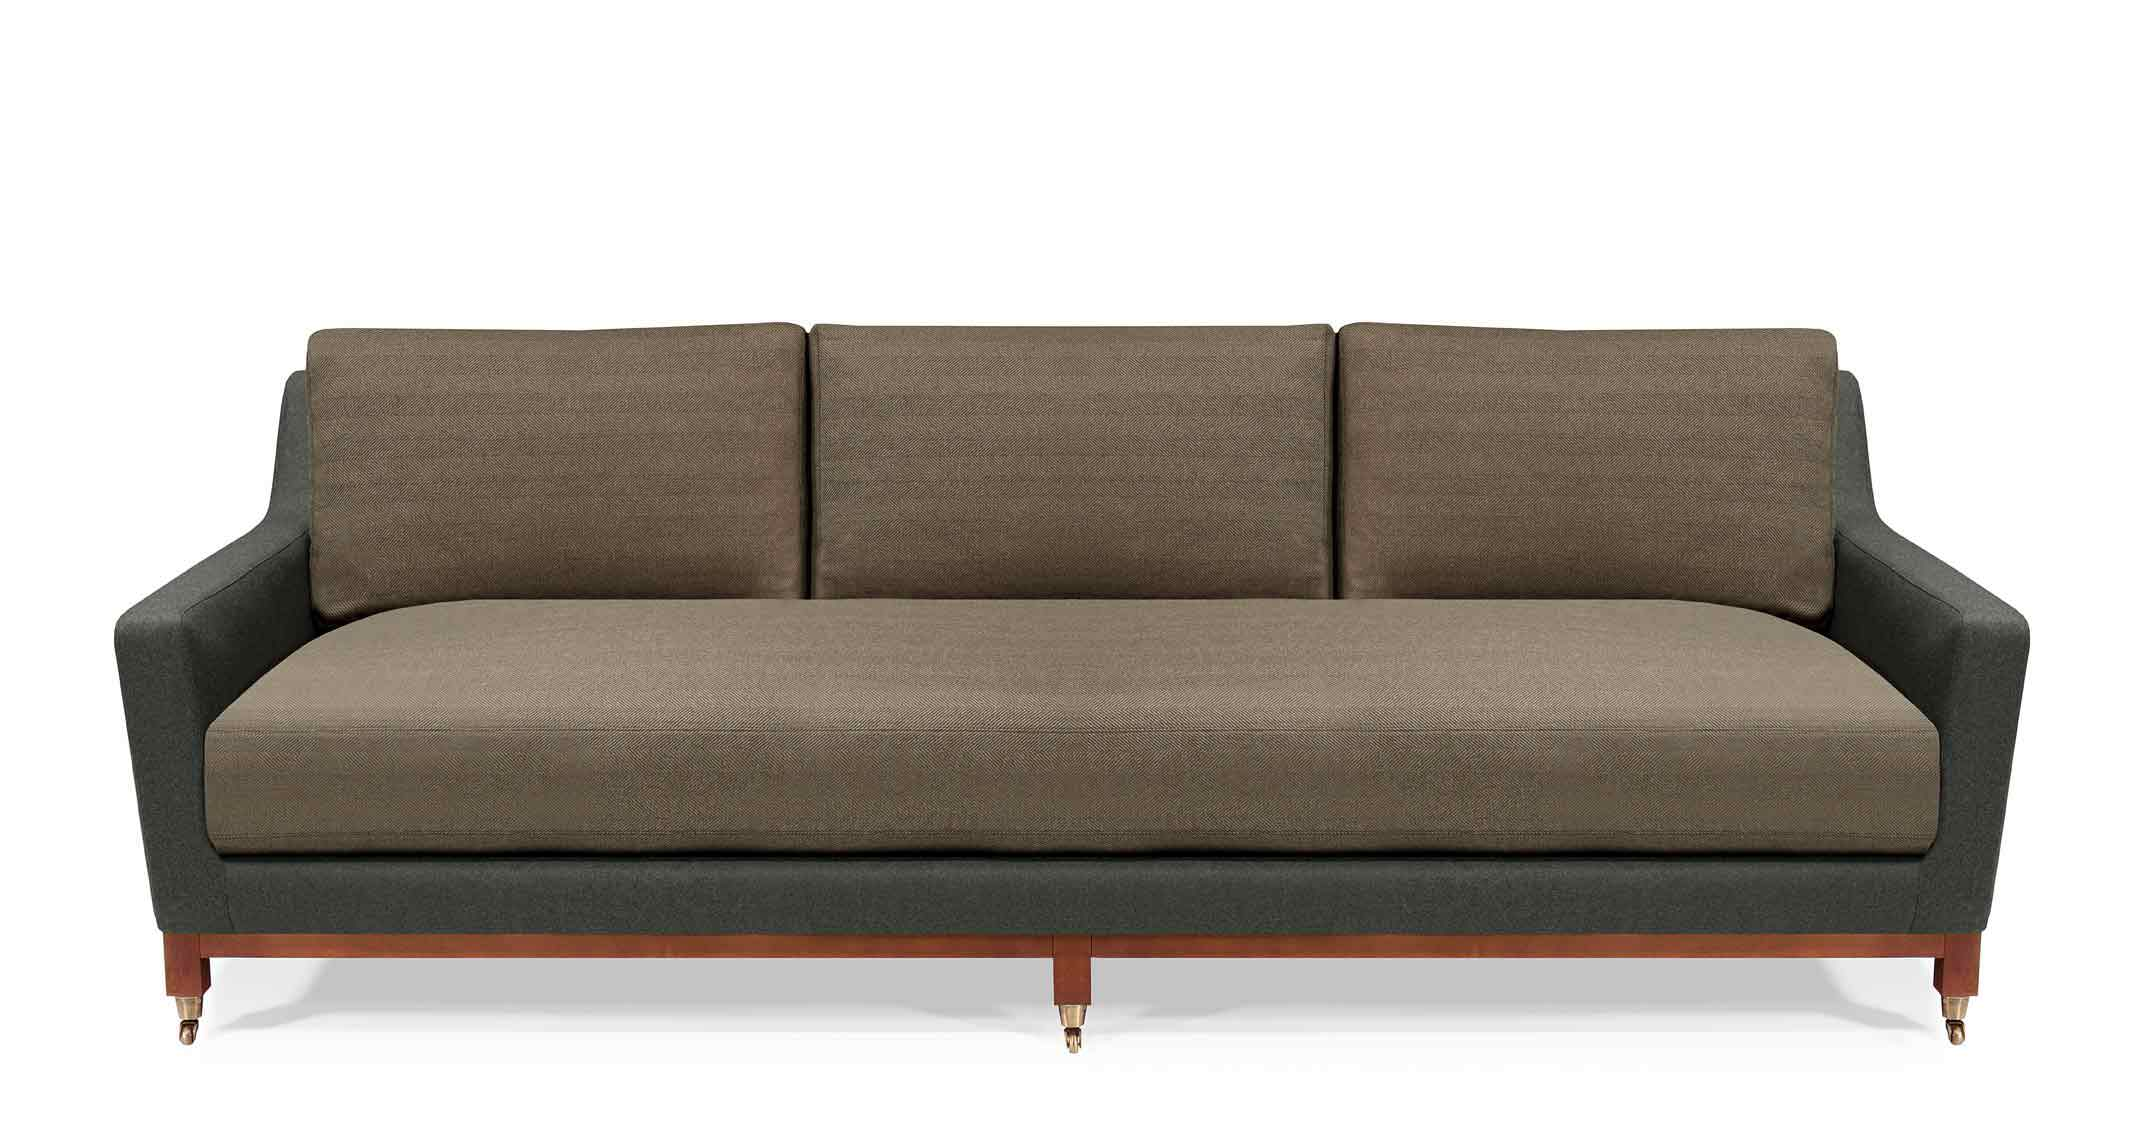 Classic sofa with a twist